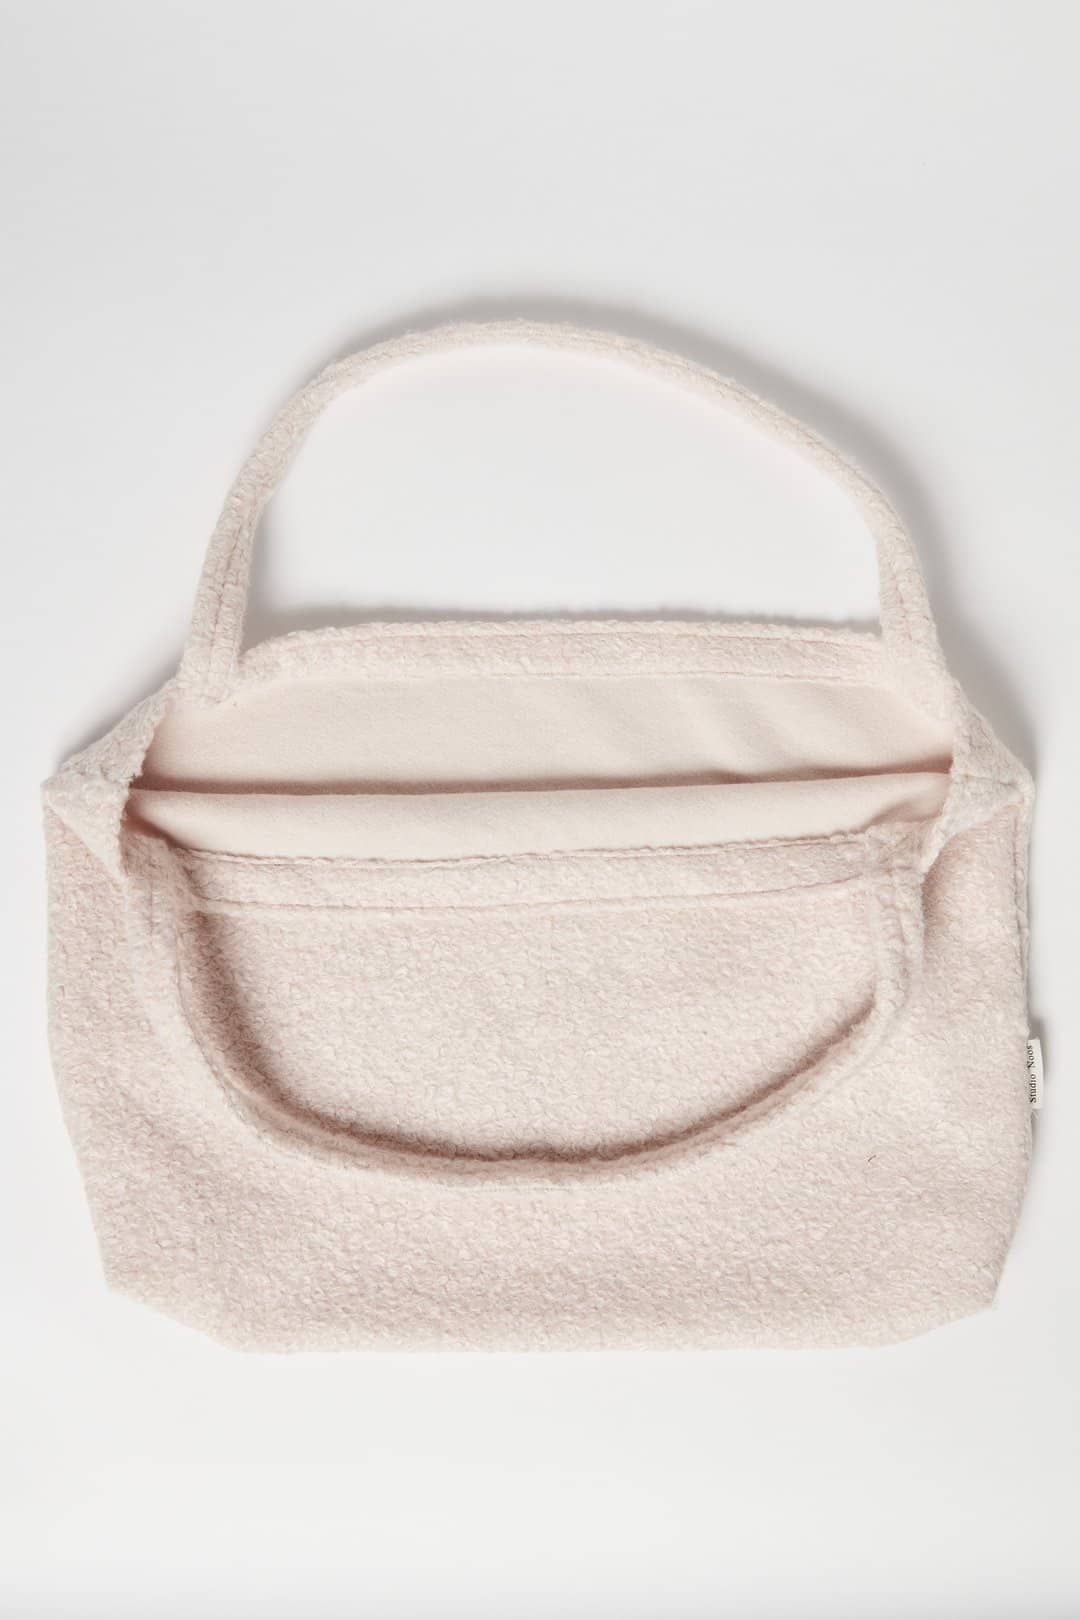 Studio Noos Studio Noos Bouclé mom-bag  - Hola BB